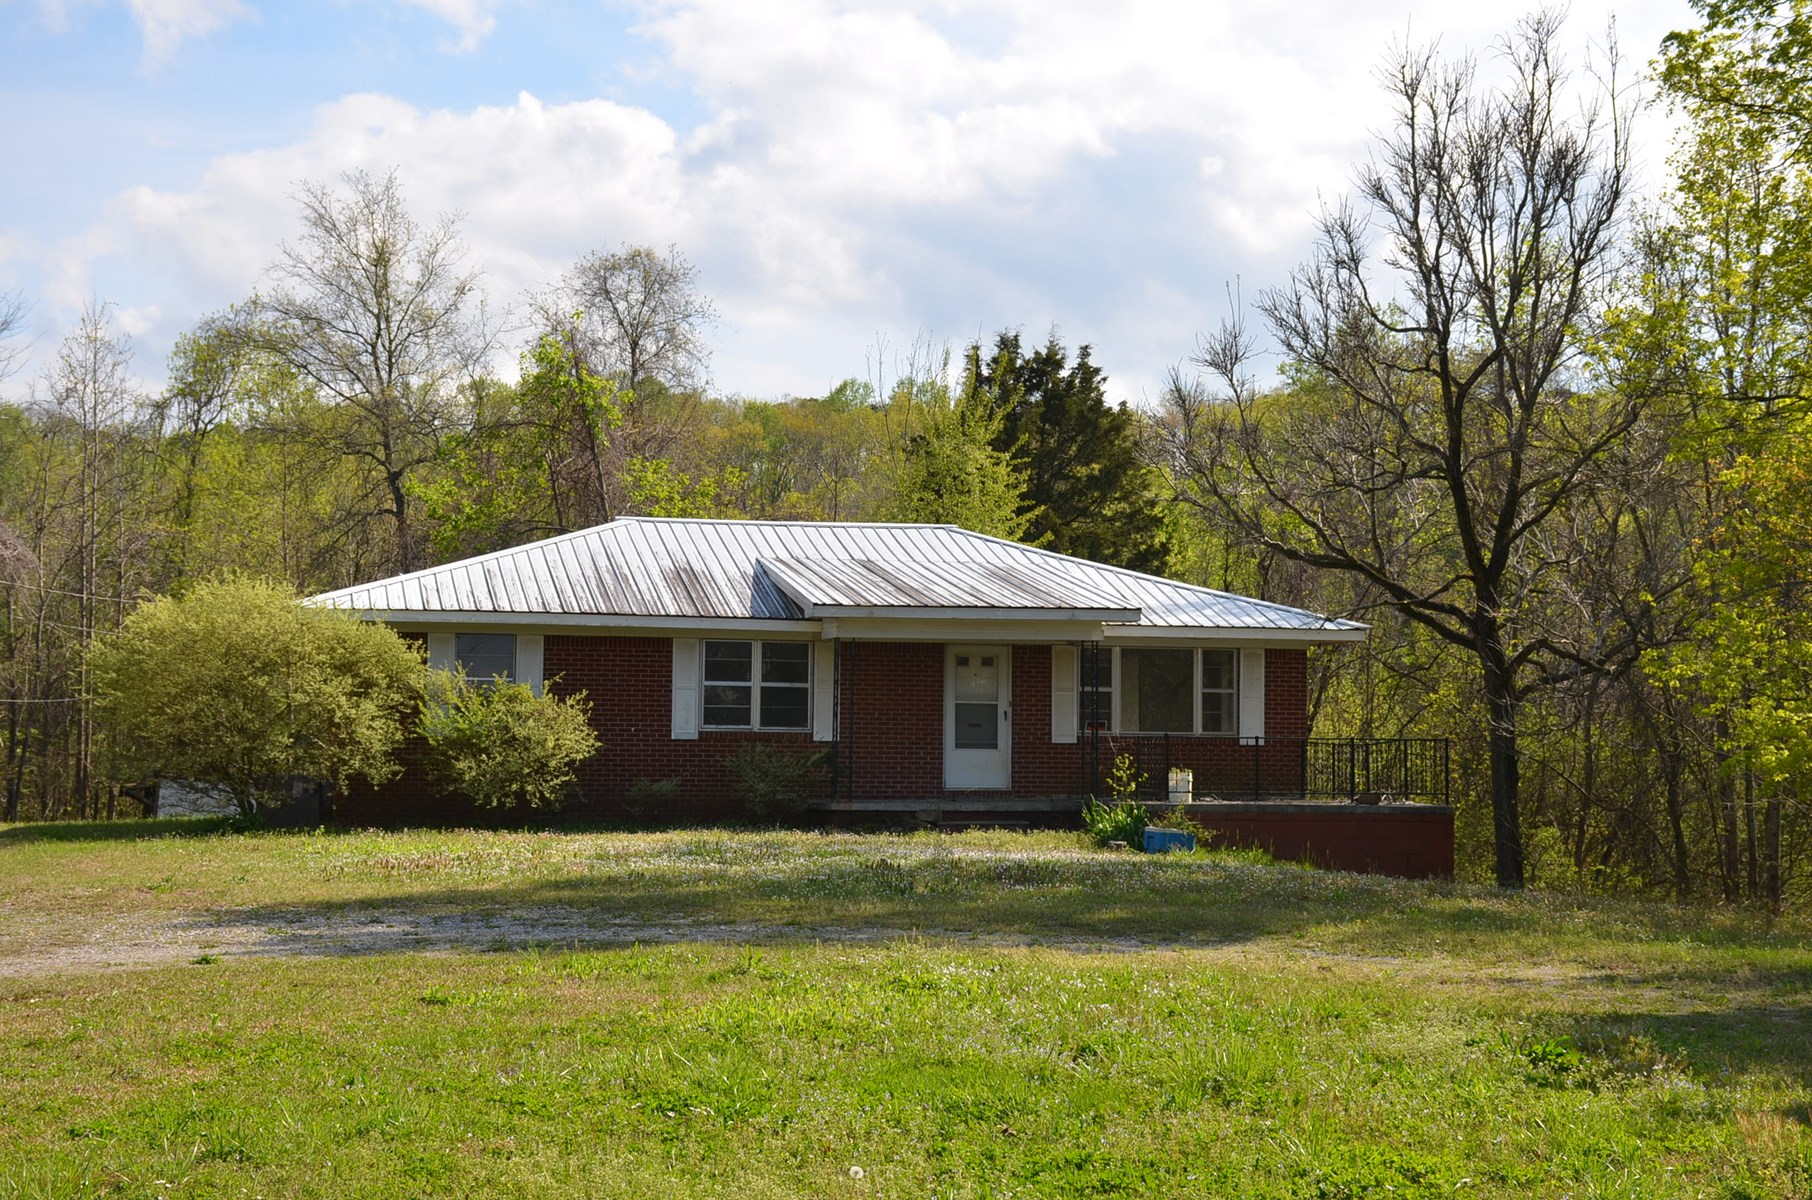 Live Auction - Brick Rancher on 2 AC Hwy 67 Decatur, AL